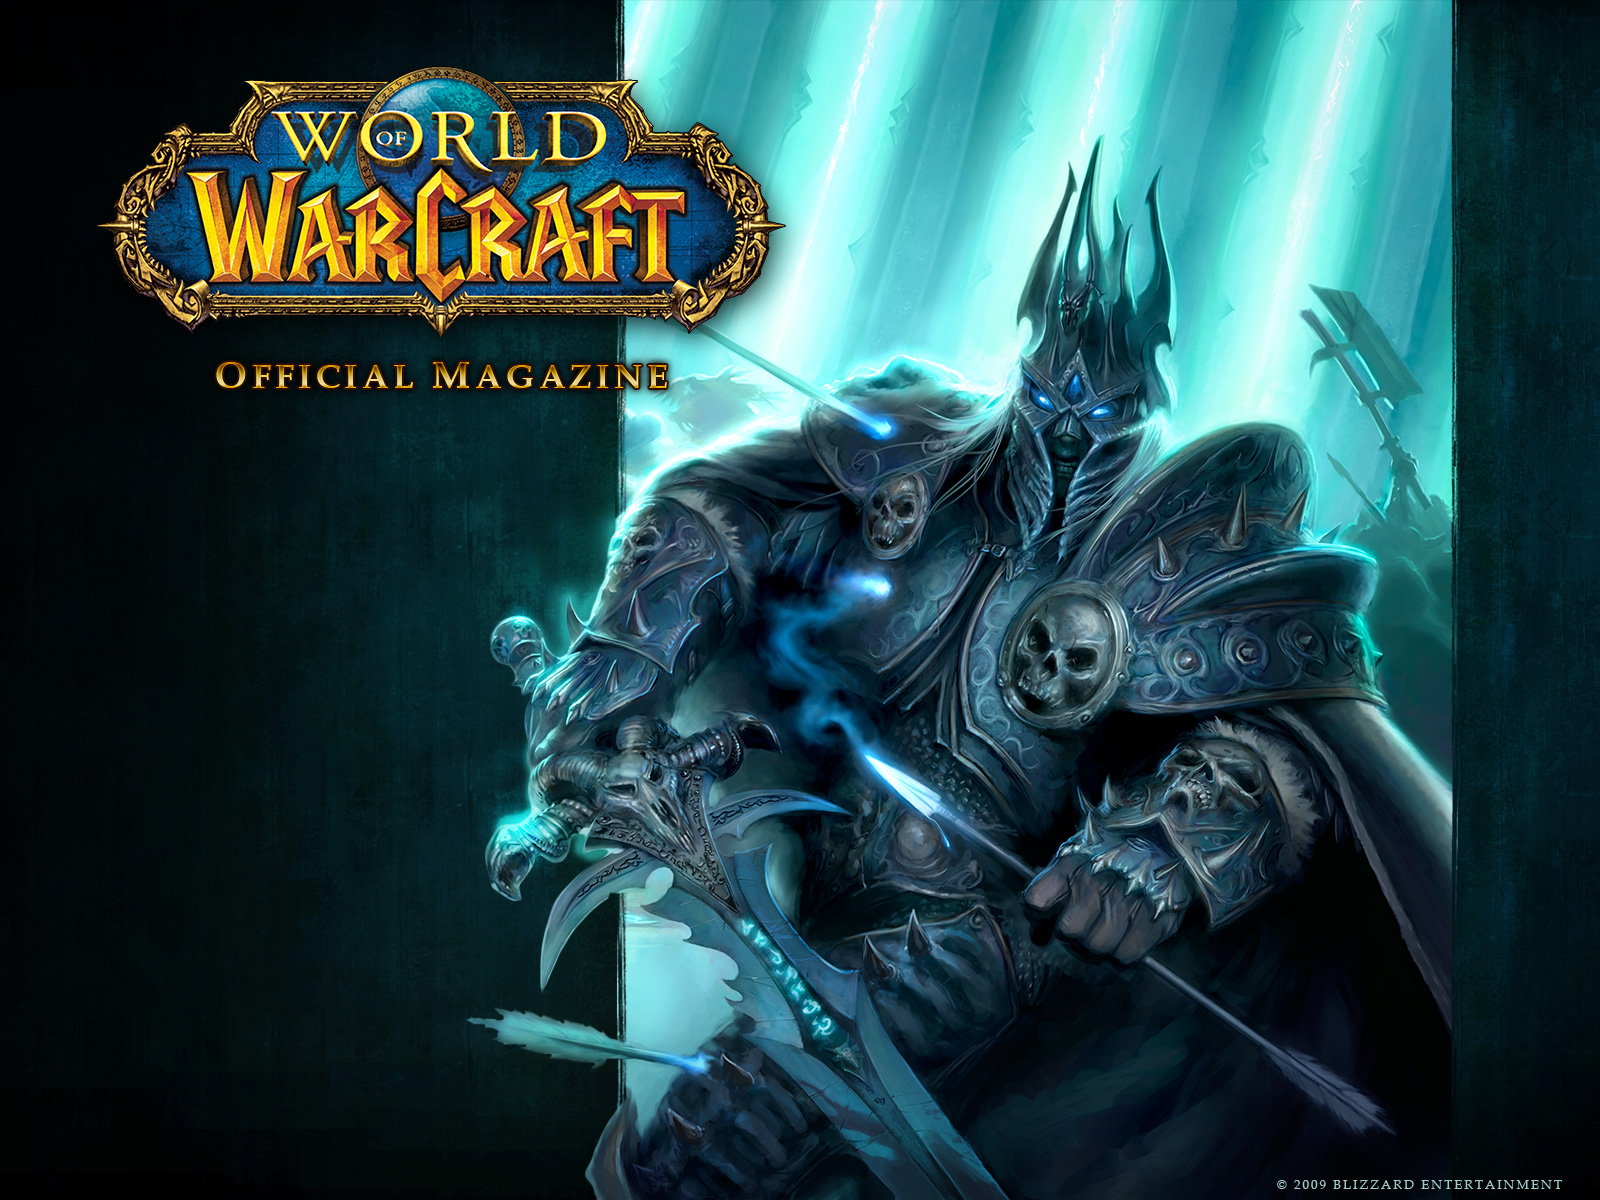 World of Warcraft Background and PostersHope you like this HD WoW 1600x1200